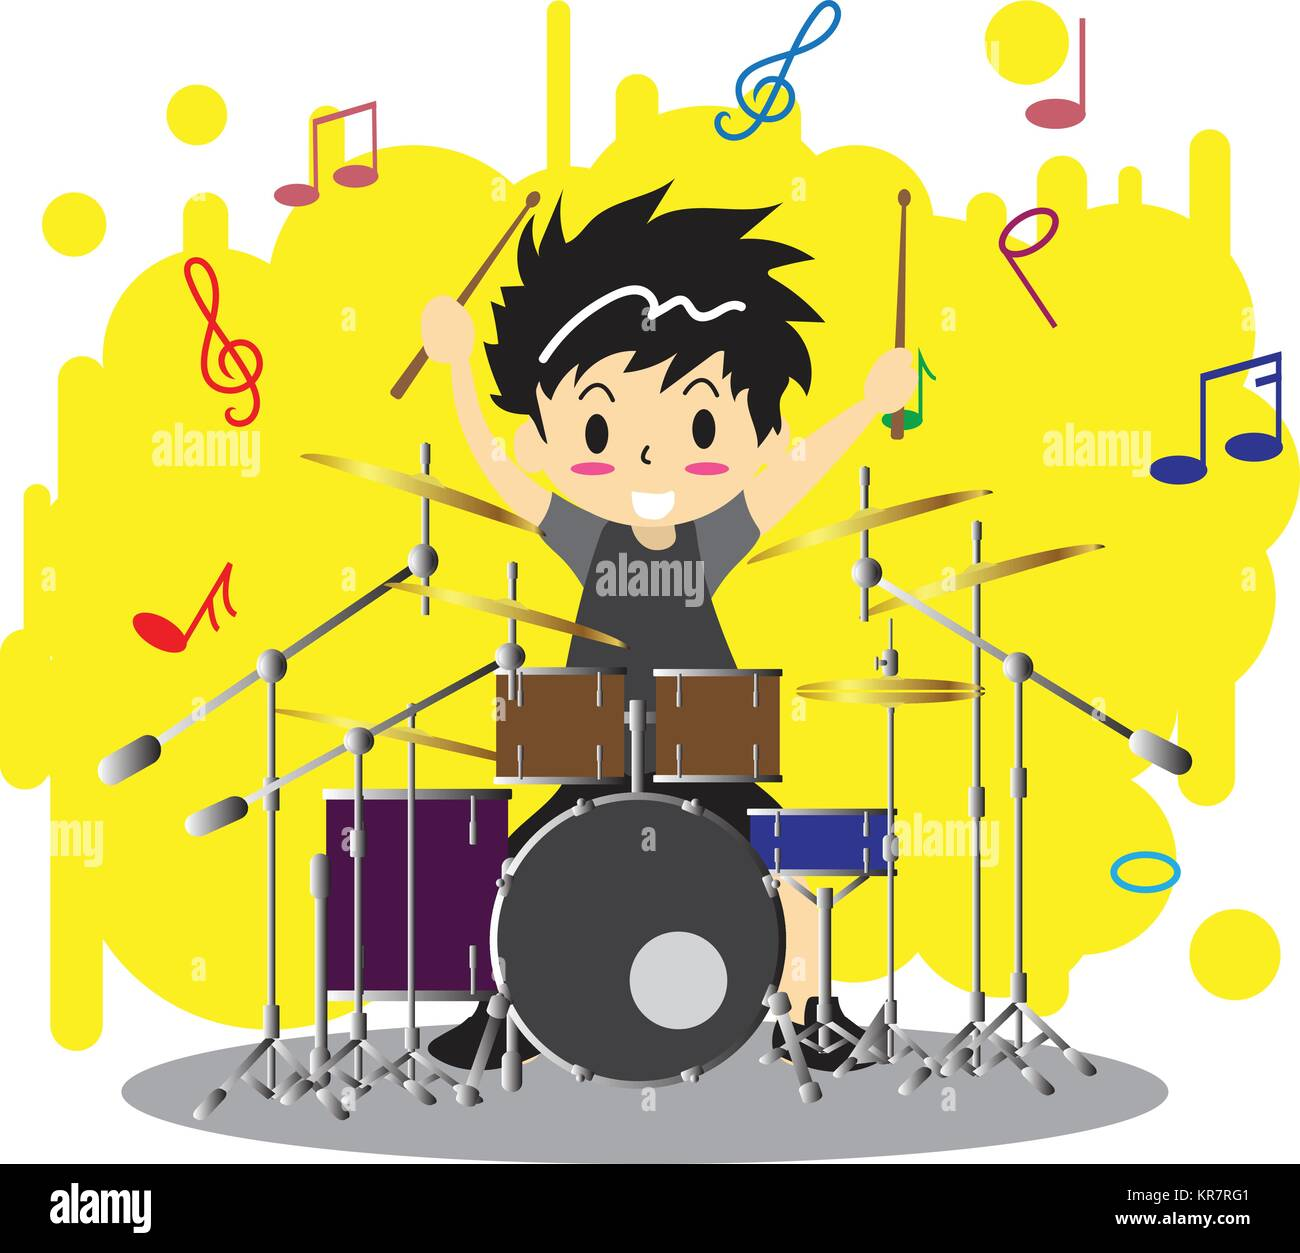 Drum Set Stock Vector Images - Alamy